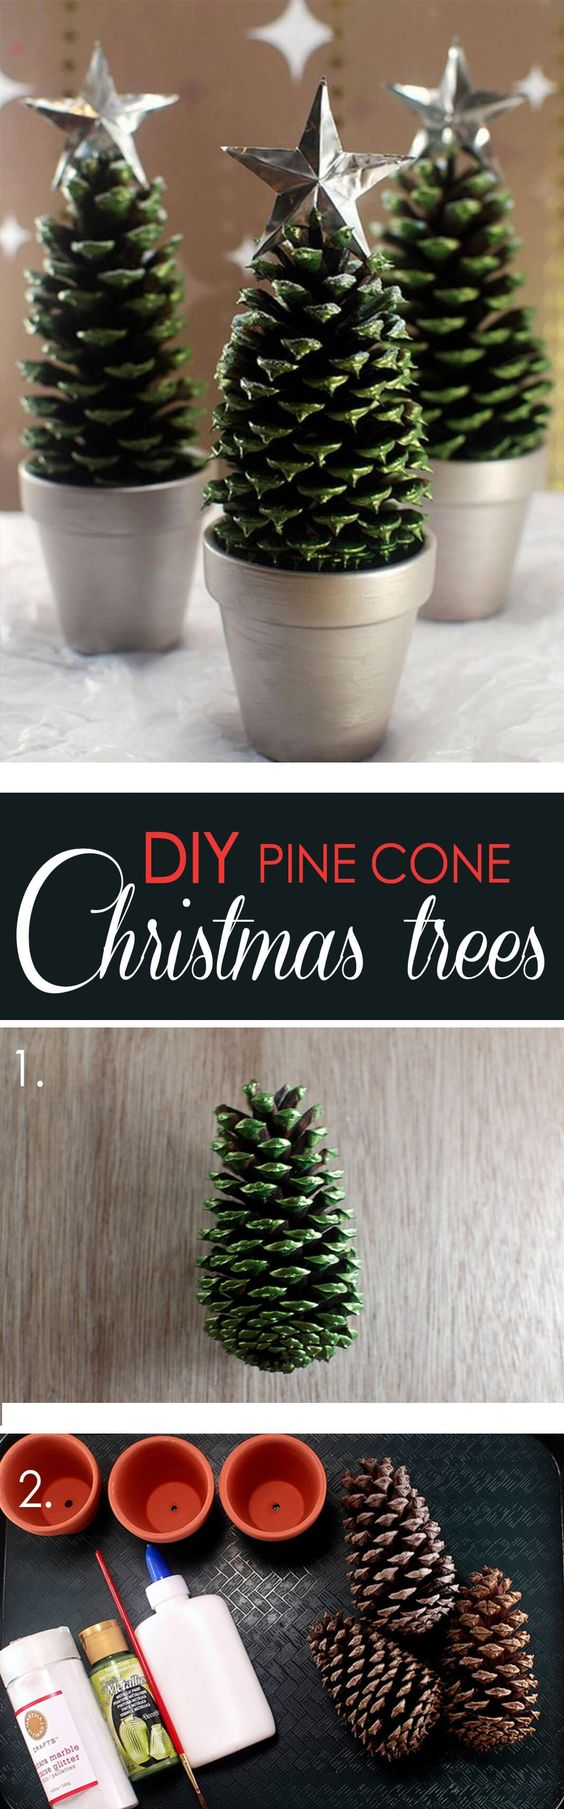 12 DIY Christmas Decorations with Nature: 8.Pinecone Christmas Tree